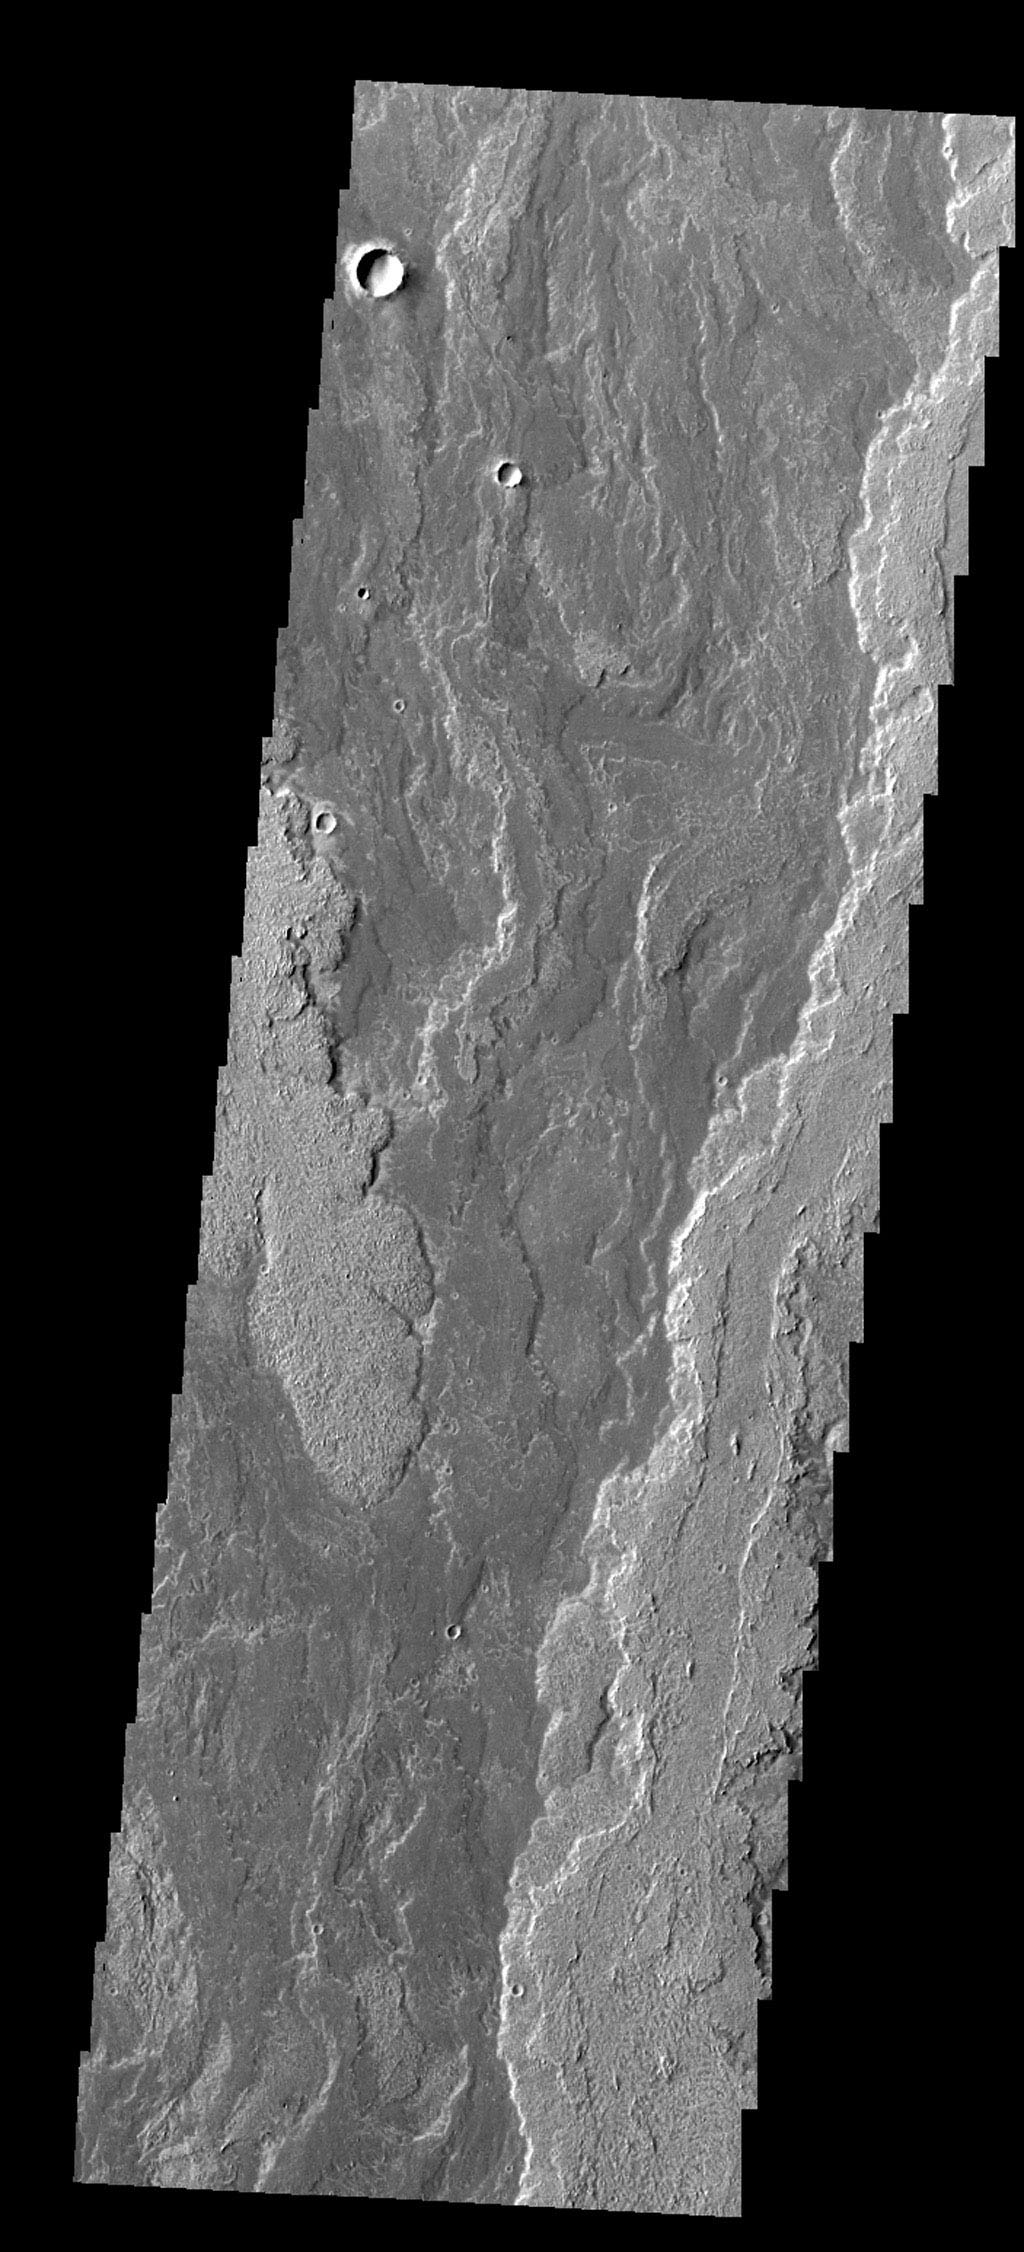 The lava flows seen in this image from NASA's 2001 Mars Odyssey spacecraft are part of Daedalia Planum. The flows are associated with Arsia Mons.